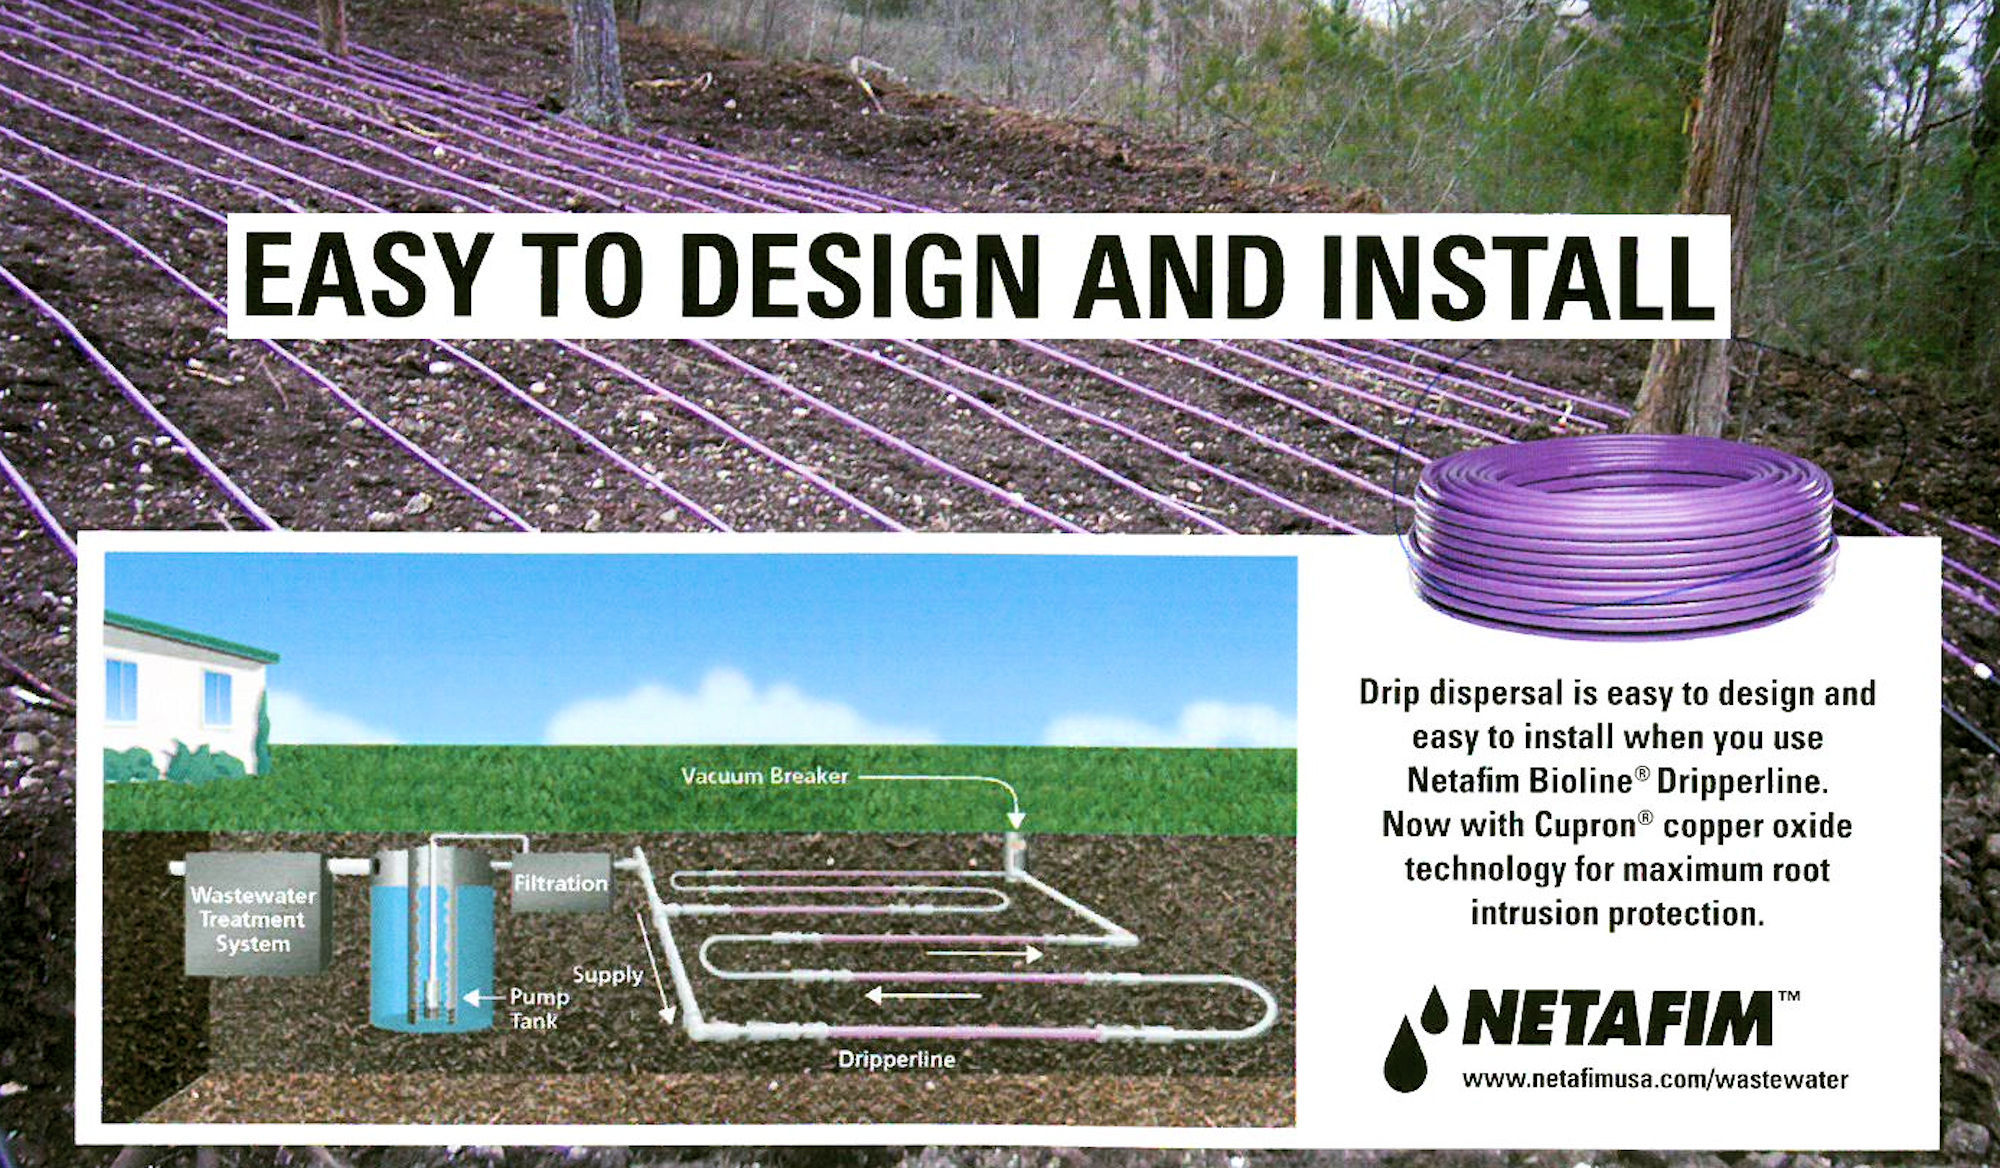 Netafim-bioline-wastewater-effluent-drip-irrigation-treatment